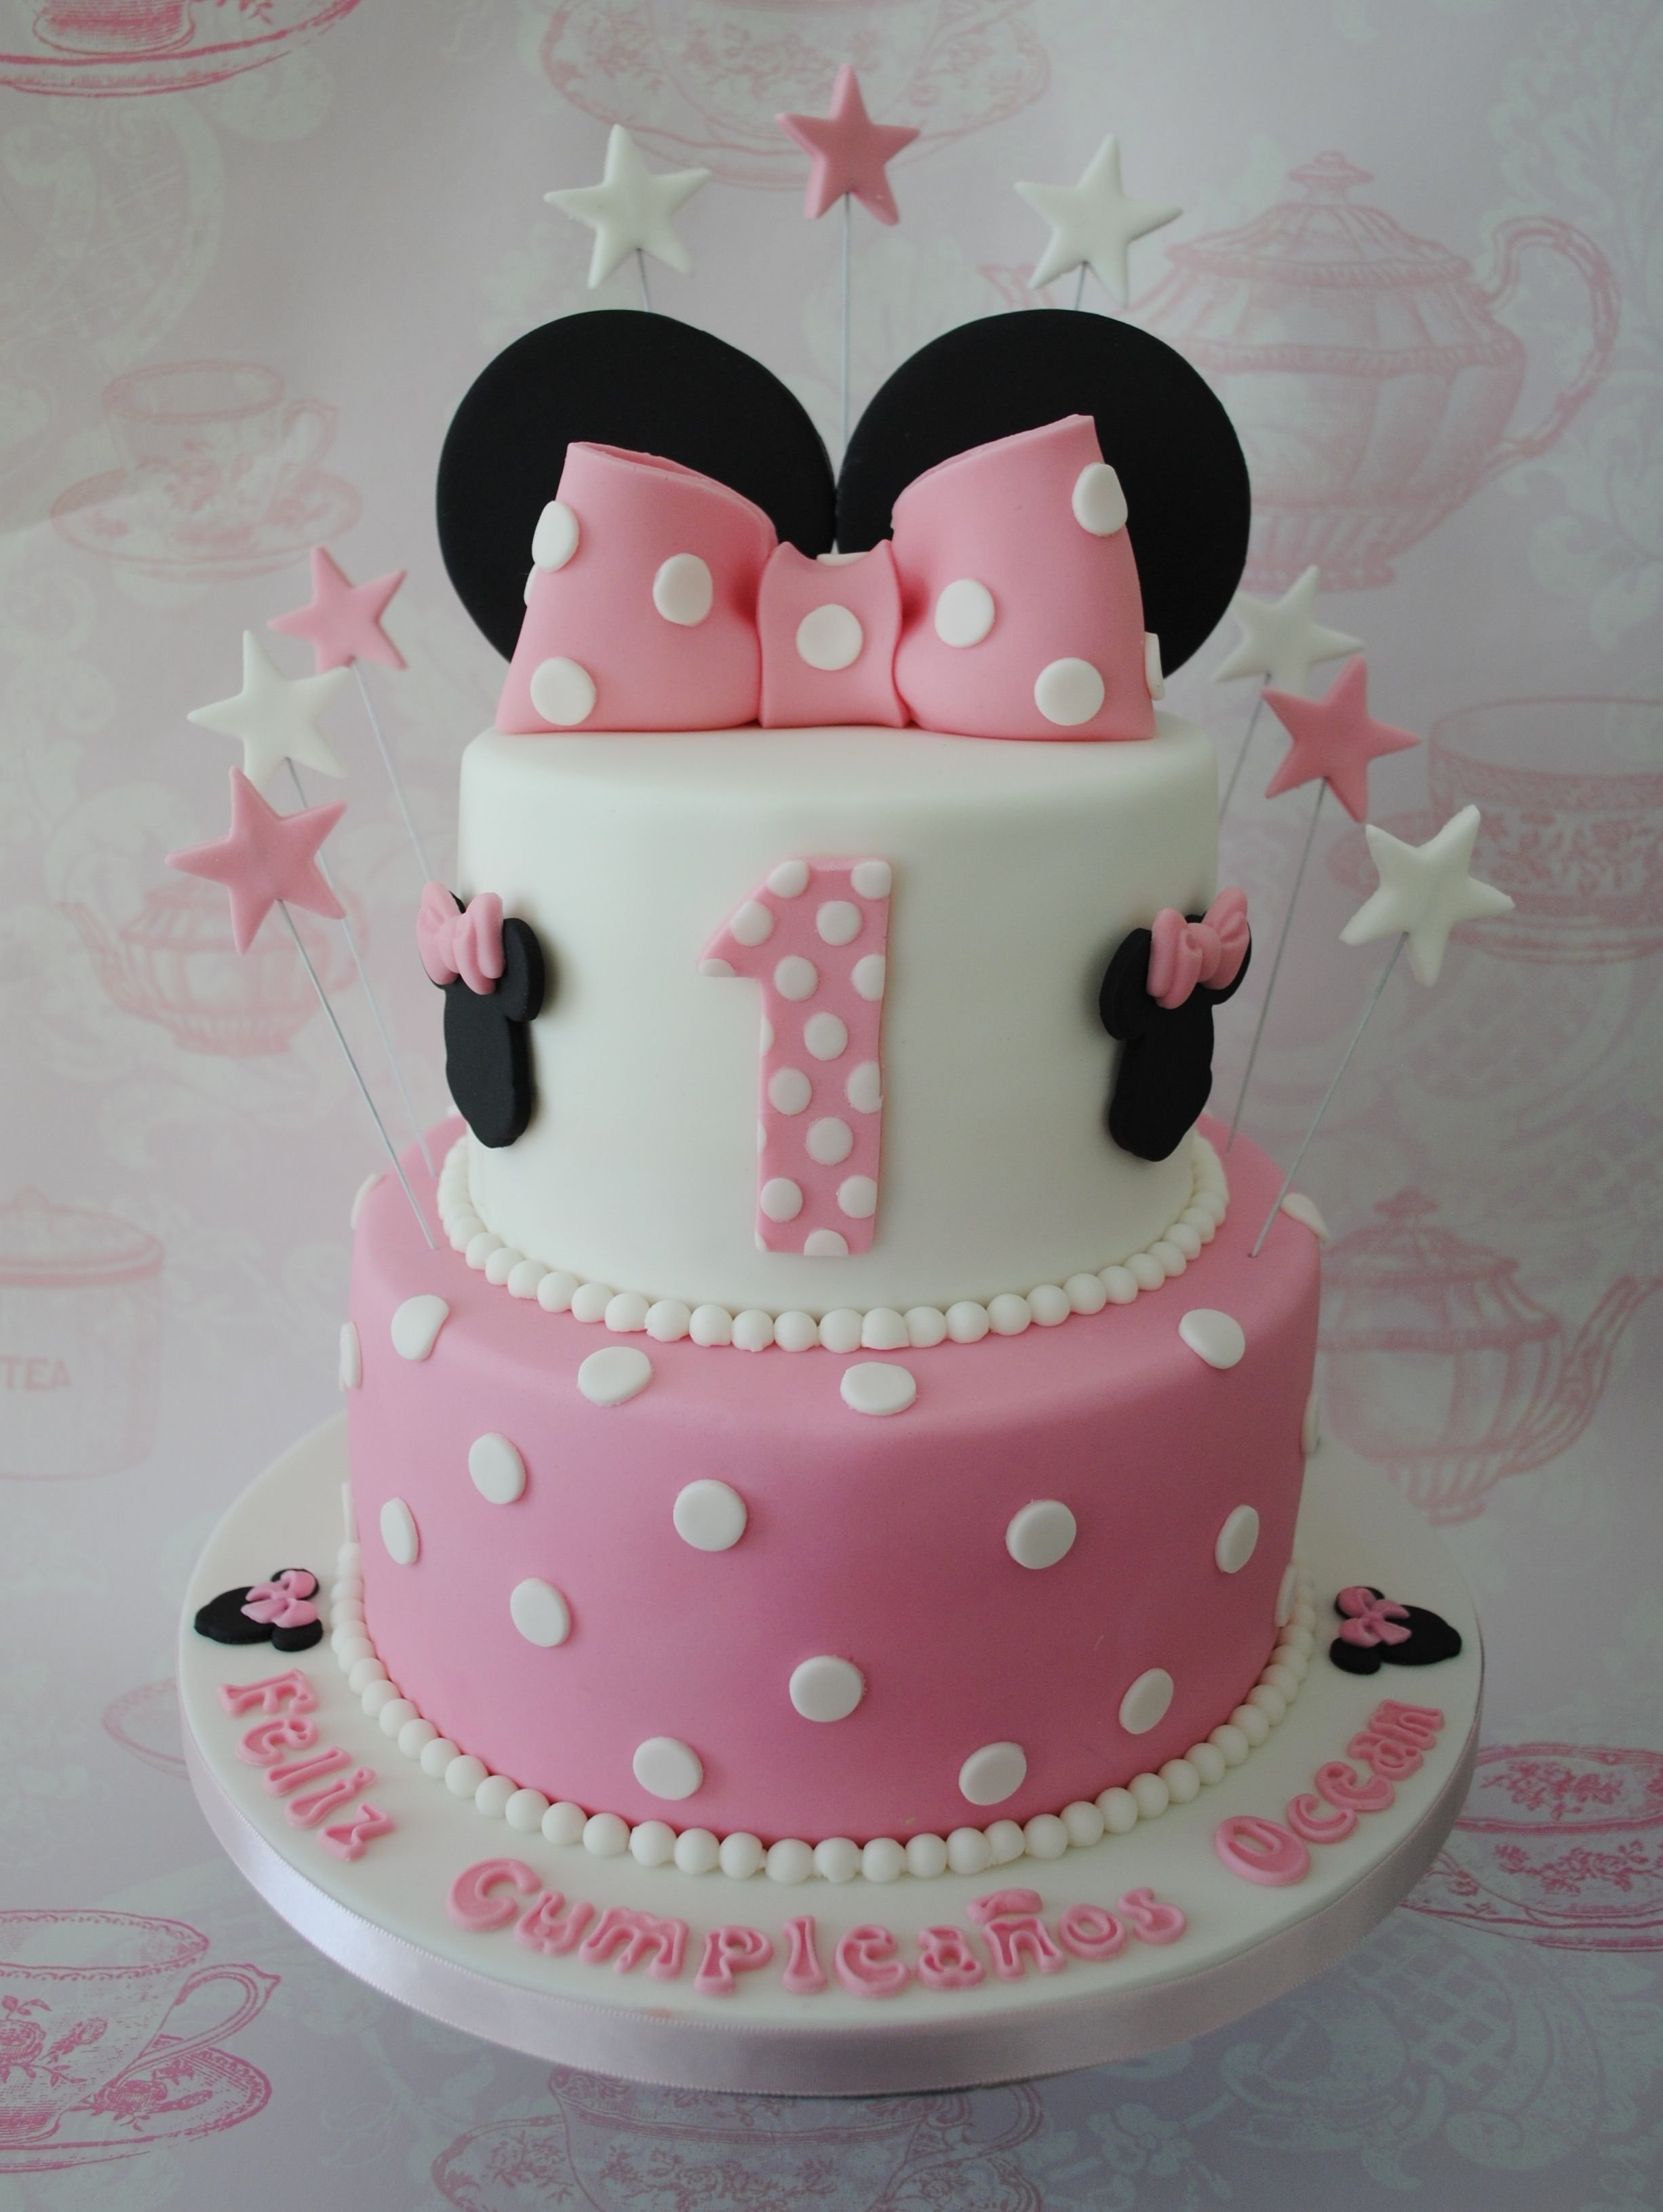 10 Ideal Minnie Mouse Birthday Cake Ideas 2 tiered minnie mouse birthday cake anniversaires gateau et